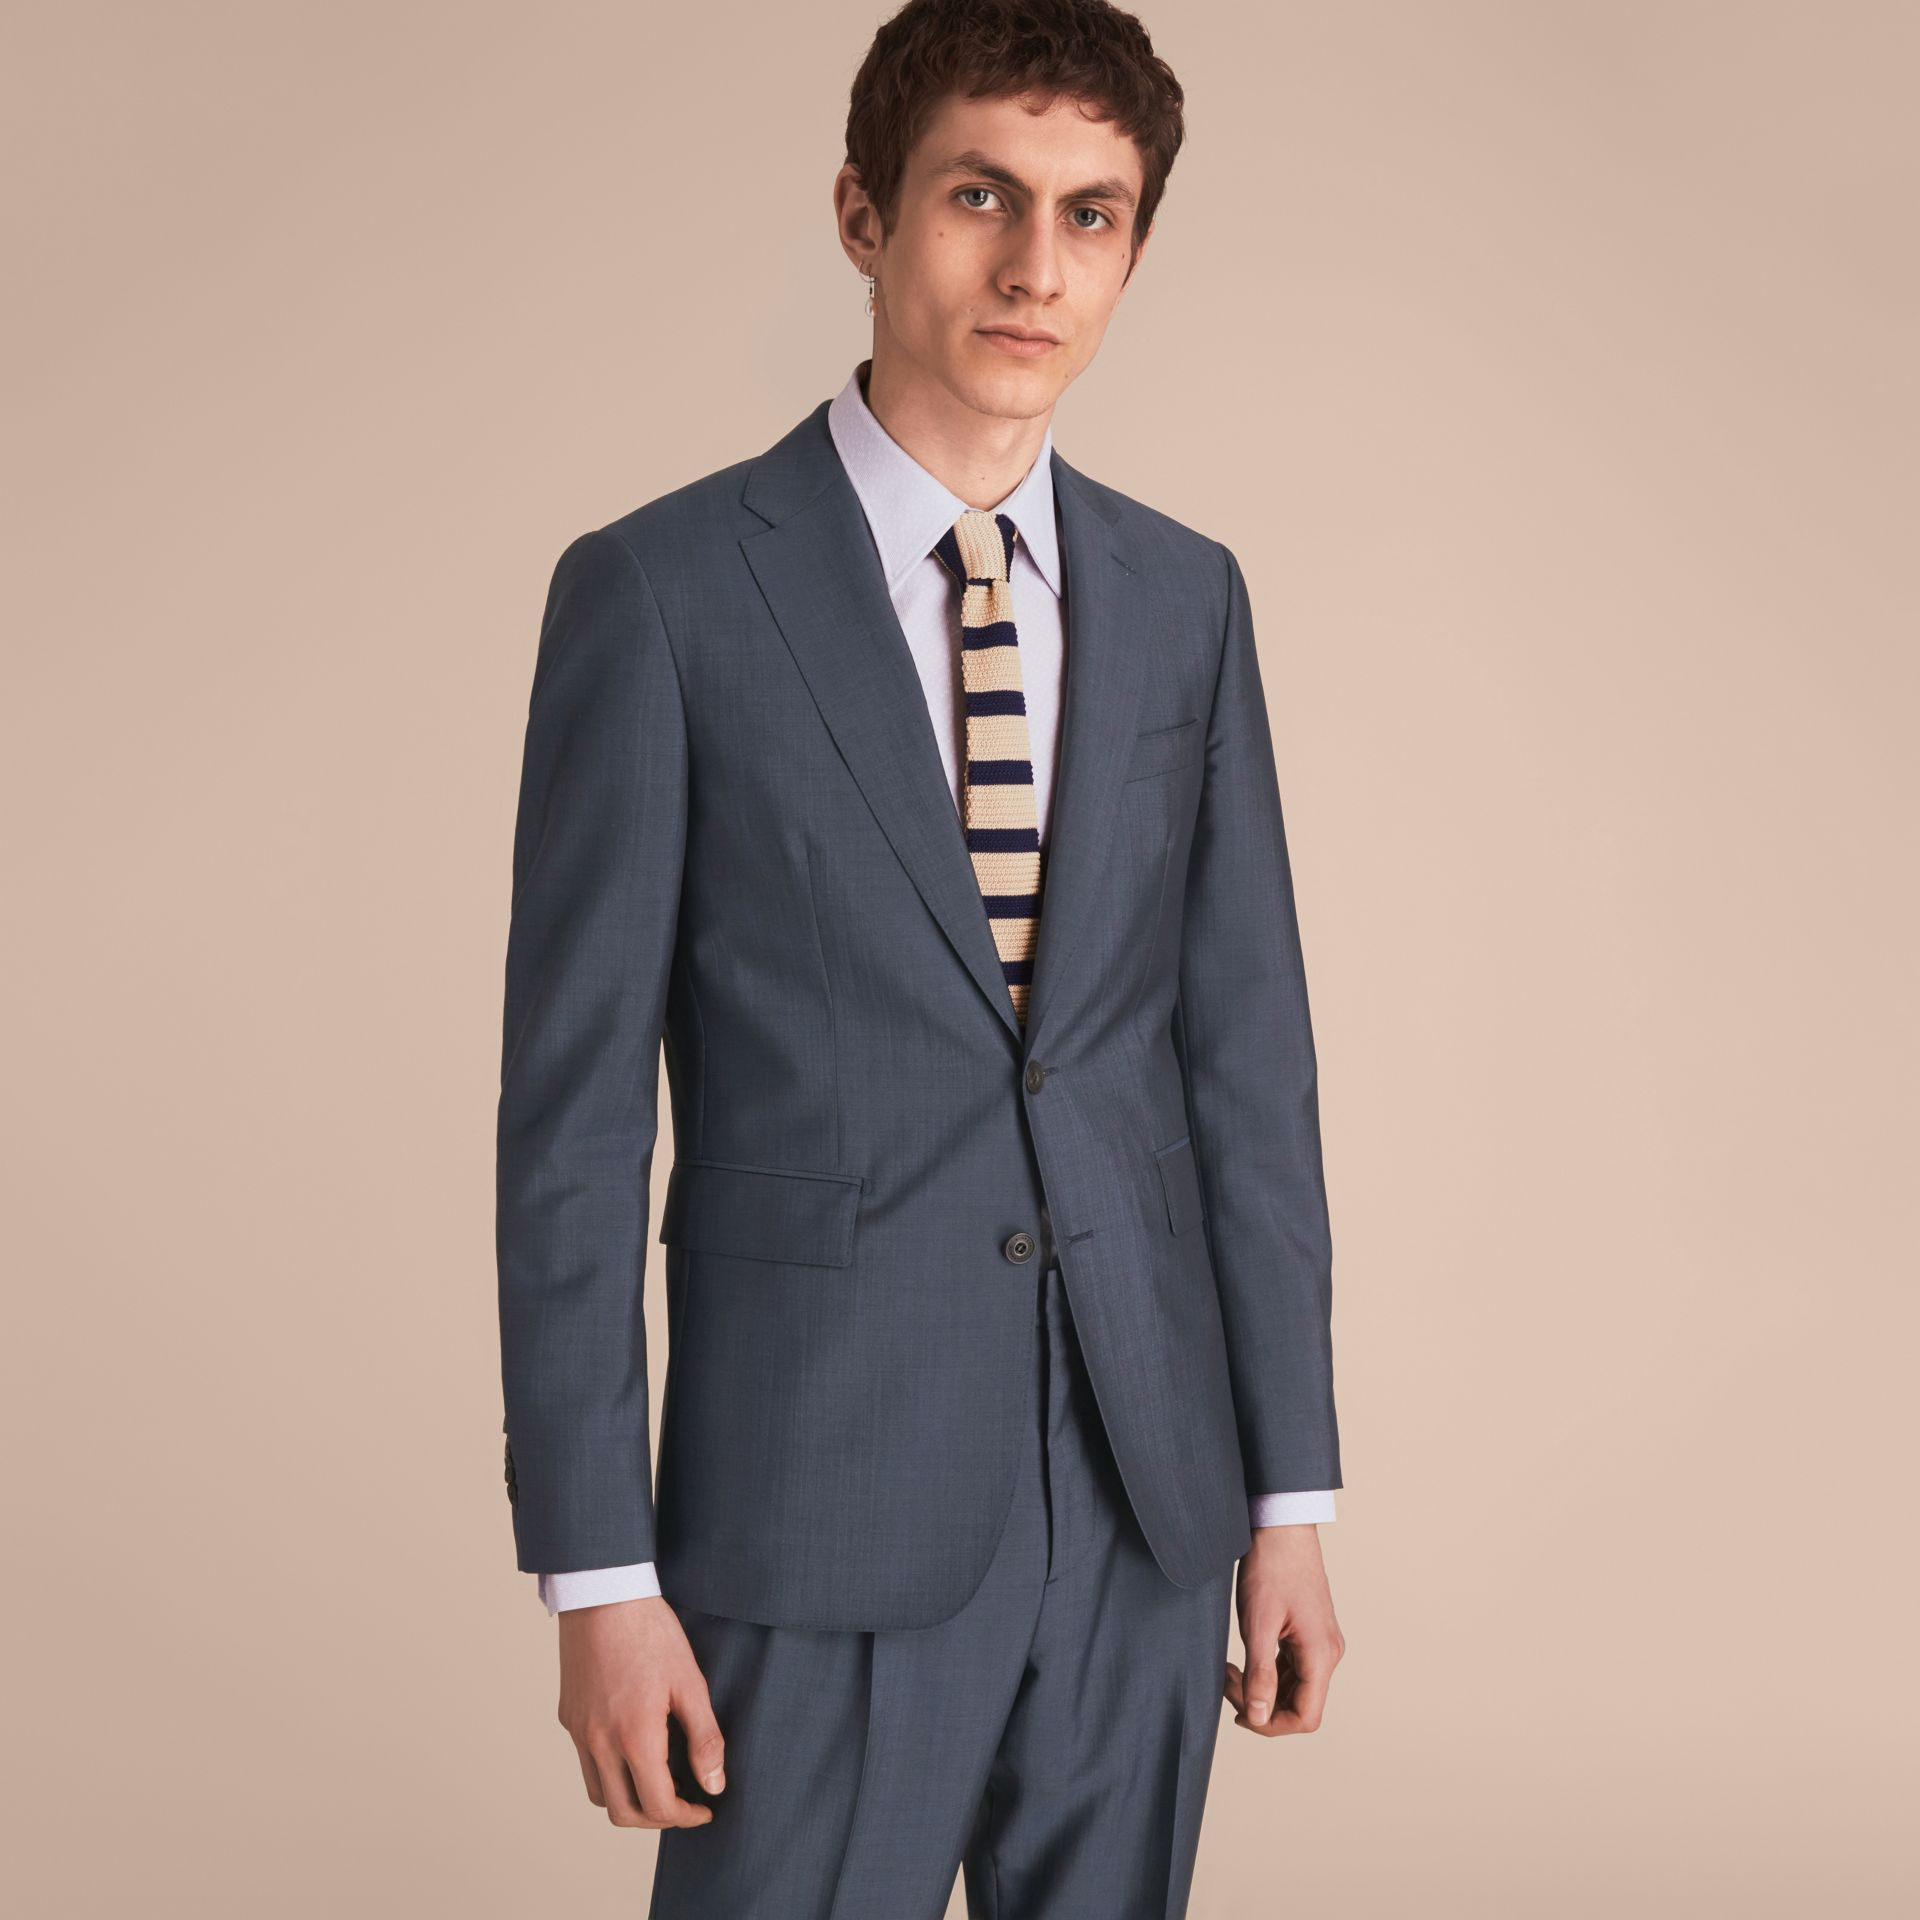 Slim Cut Two-tone Knitted Silk Tie in Limestone - Men | Burberry Singapore - gallery image 3